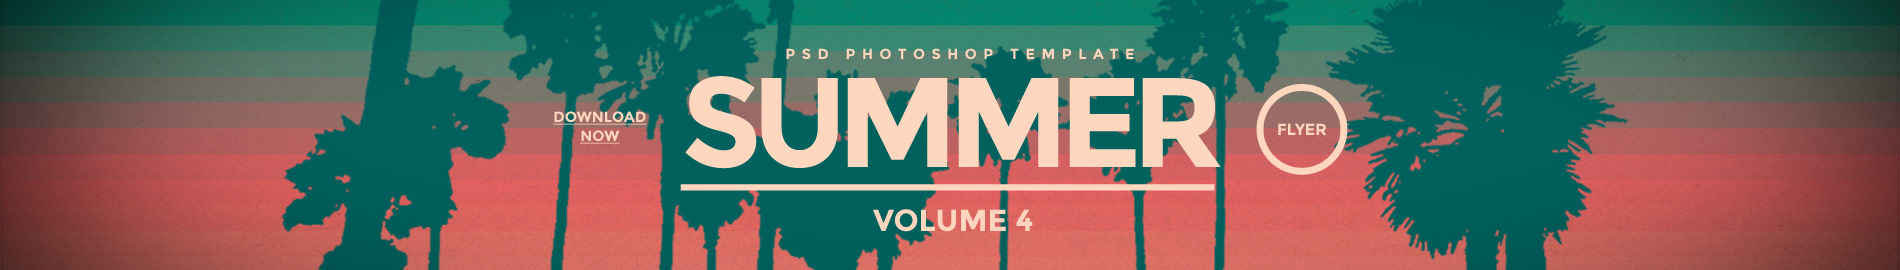 Slider_Flyer_SummerVol41